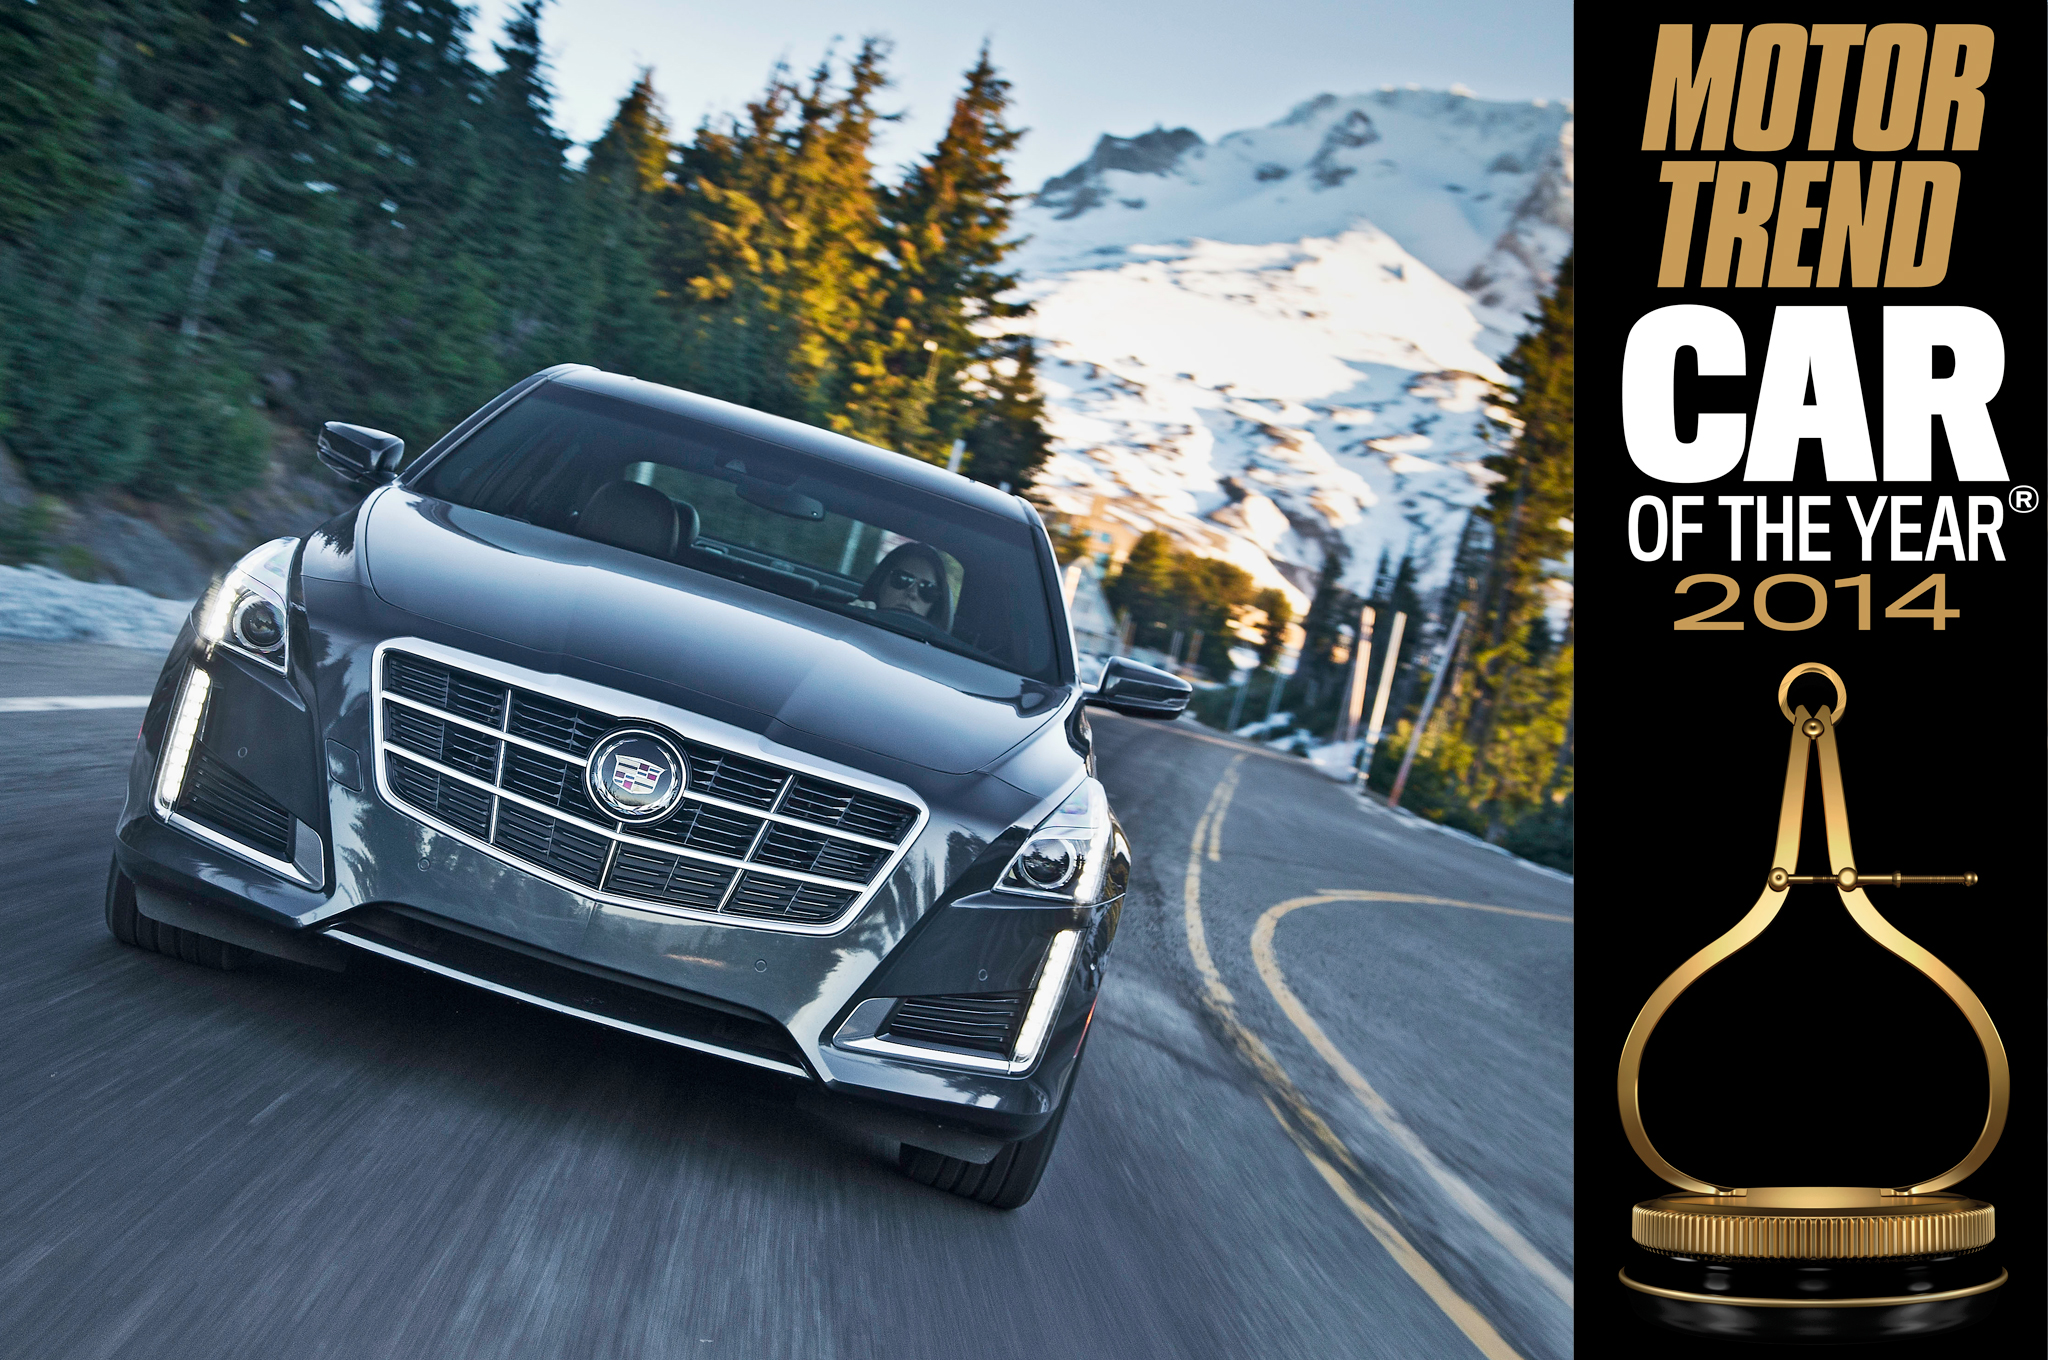 2014 motor trend car of the year cadillac cts digital for Motor trend on demand promo code